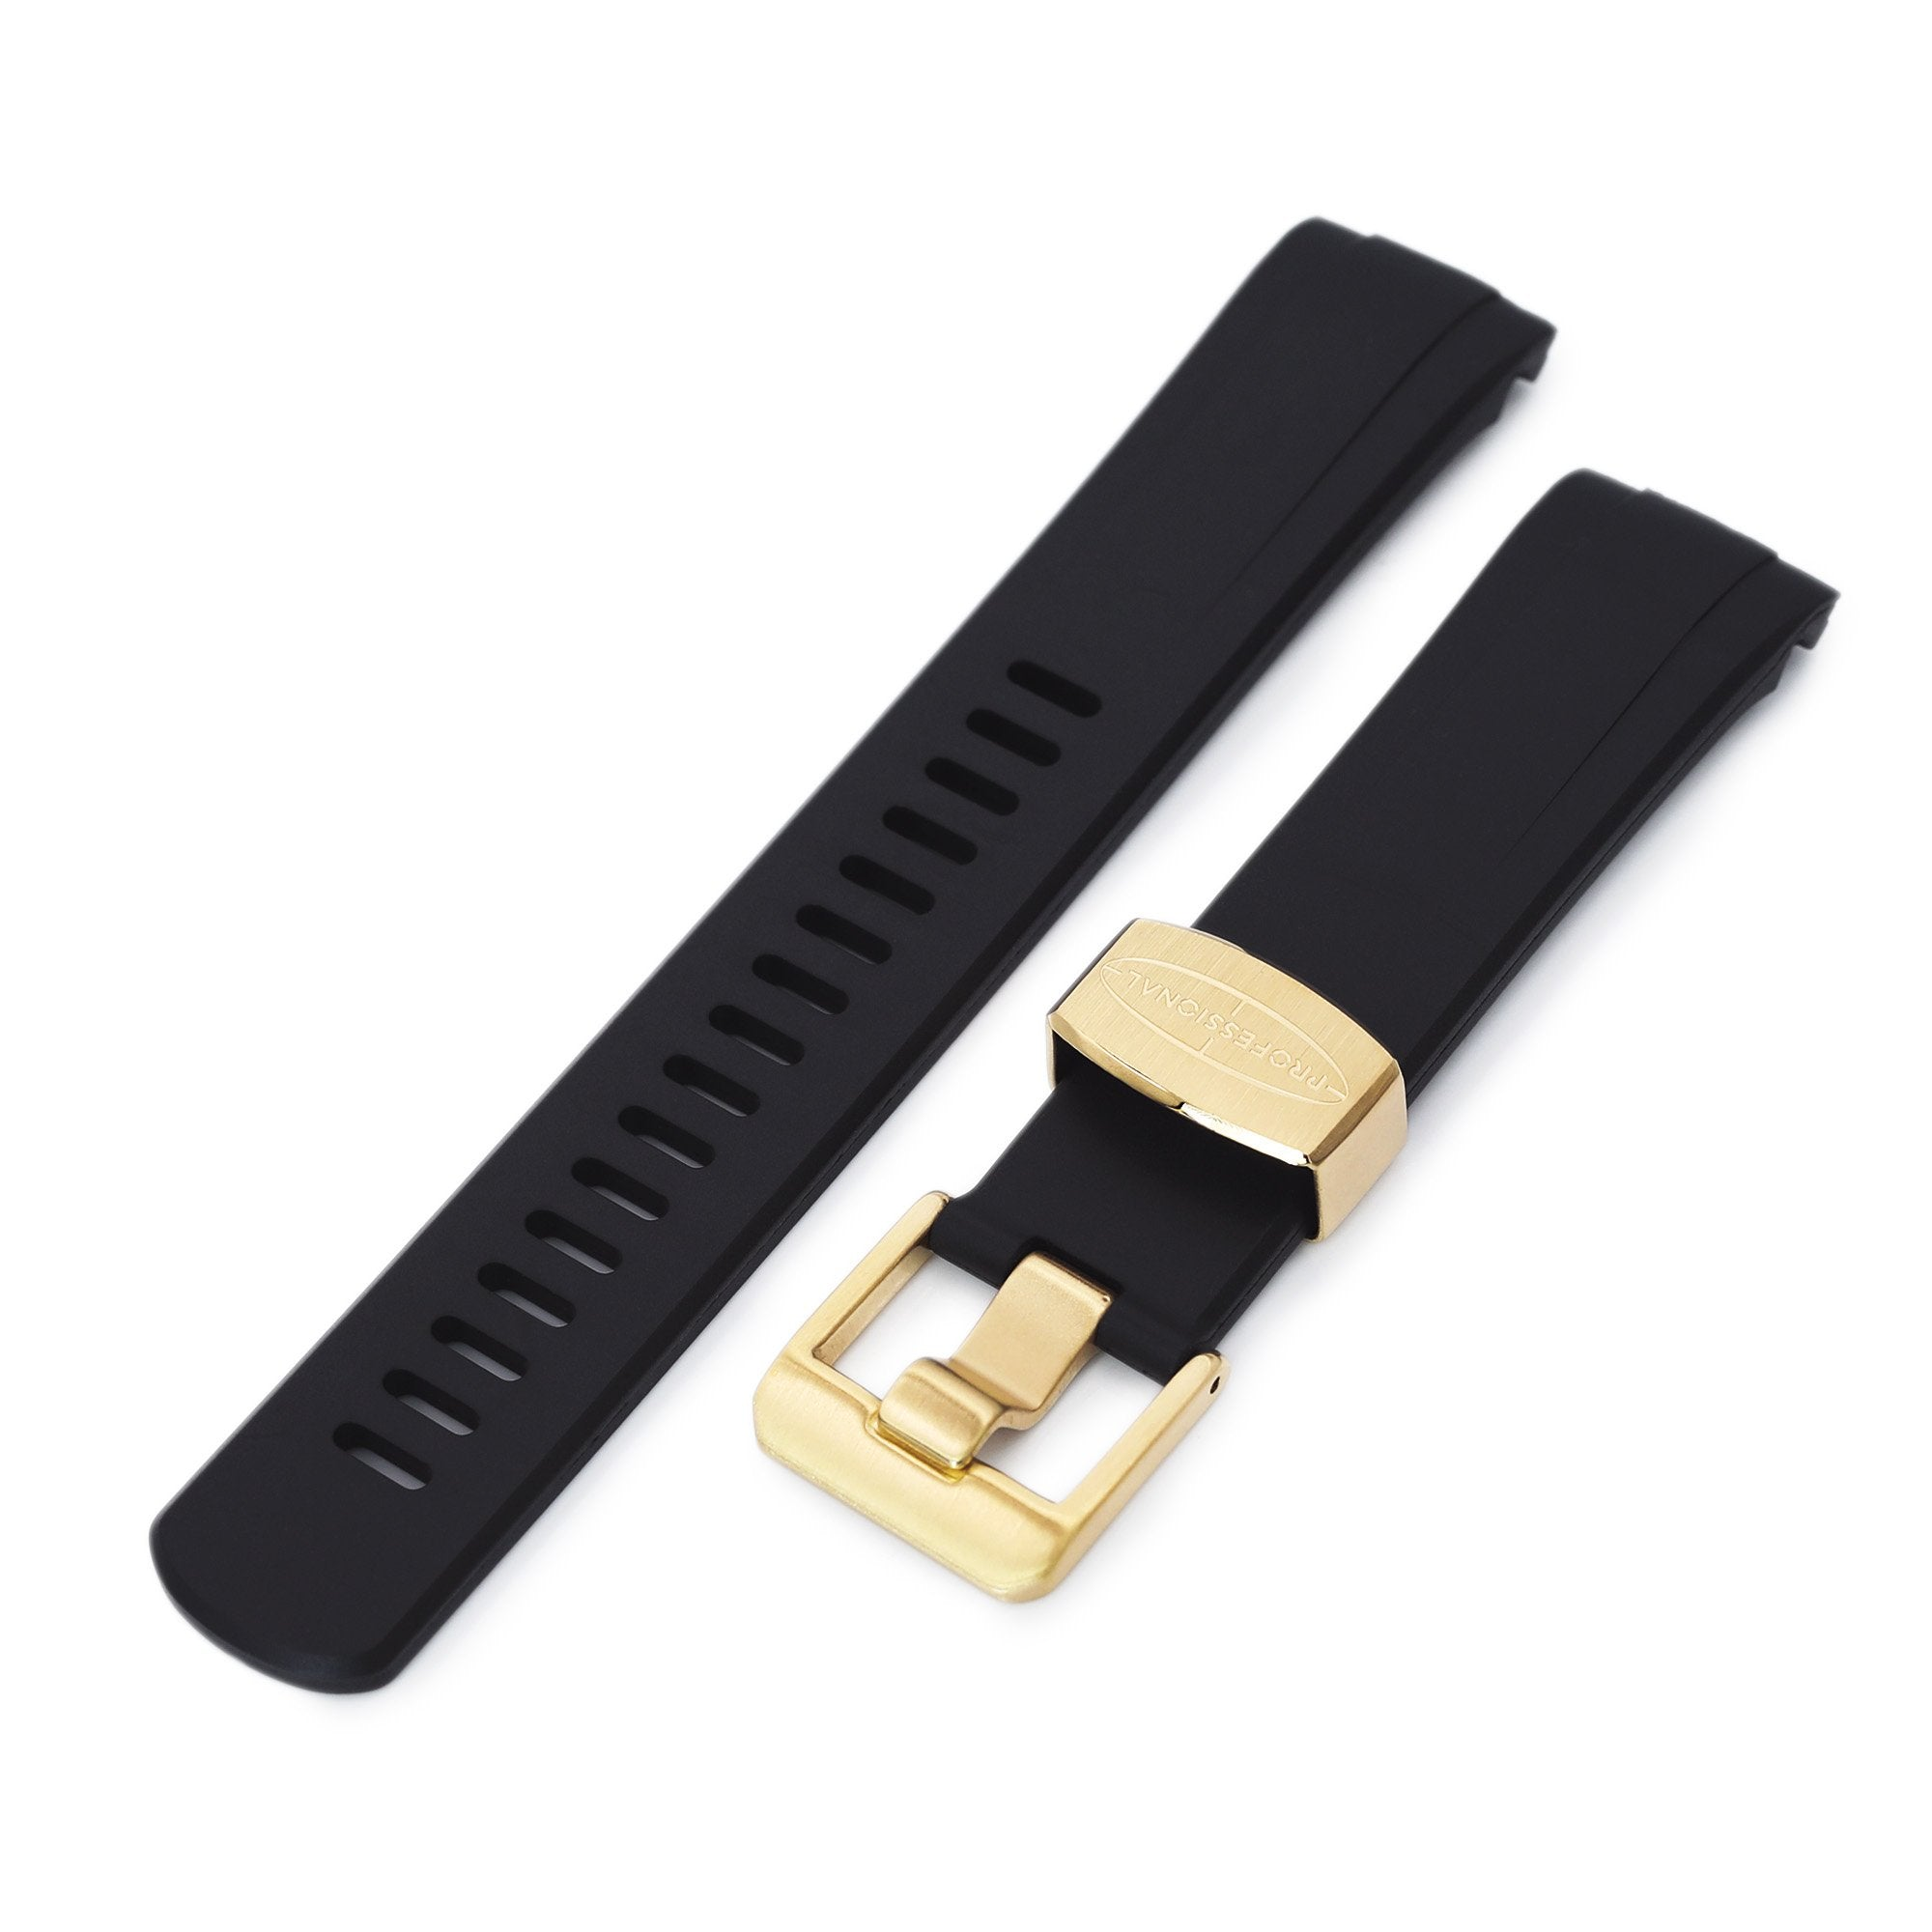 22mm Crafter Blue Black Rubber Curved Lug Watch Band for Seiko Gold Turtle SRPC44 IP Gold Buckle Strapcode Watch Bands